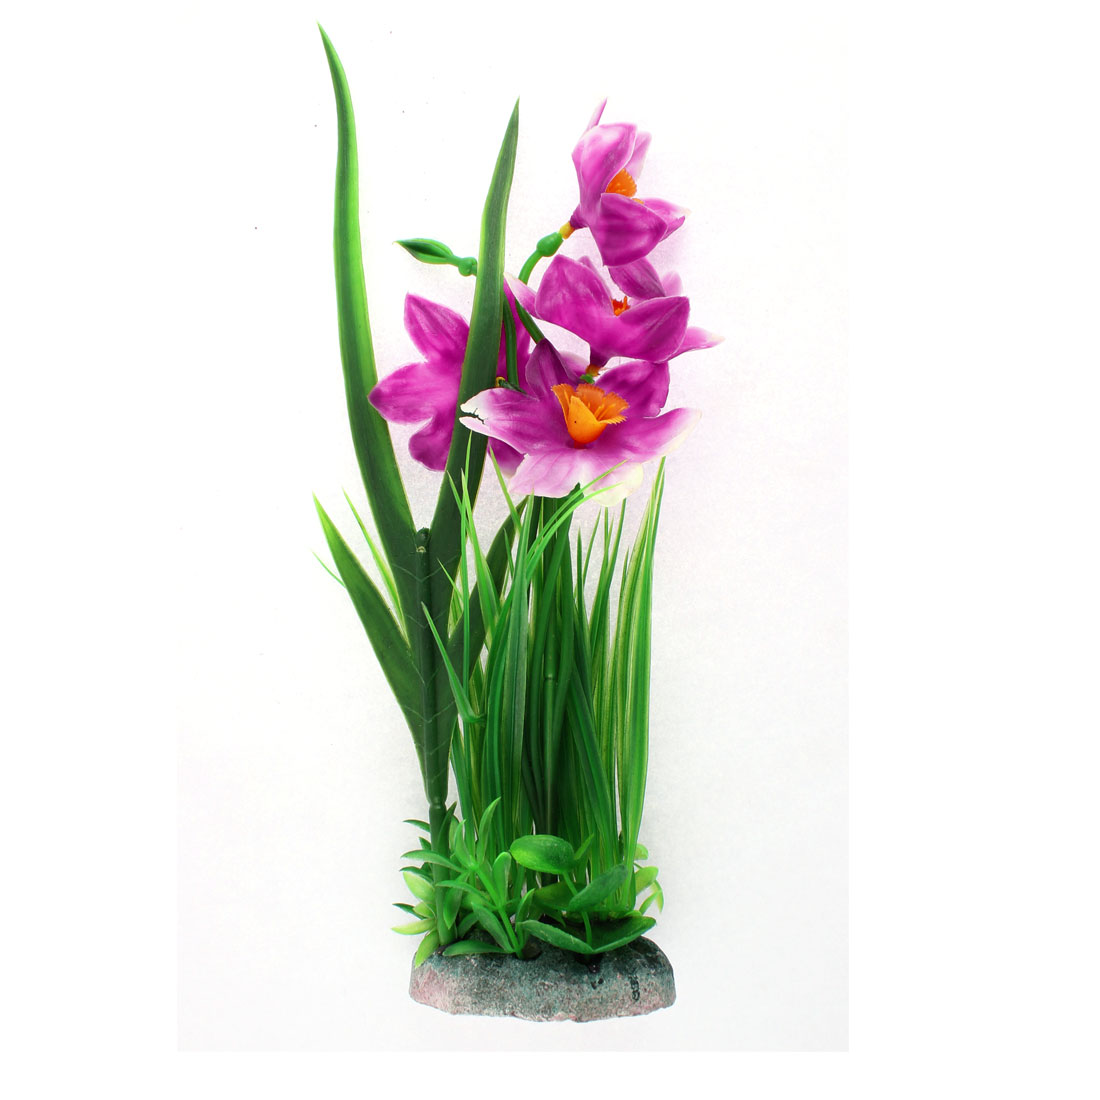 Aquarium Fishbowl Simulation Landscape Plant Flower Grass Decor Green